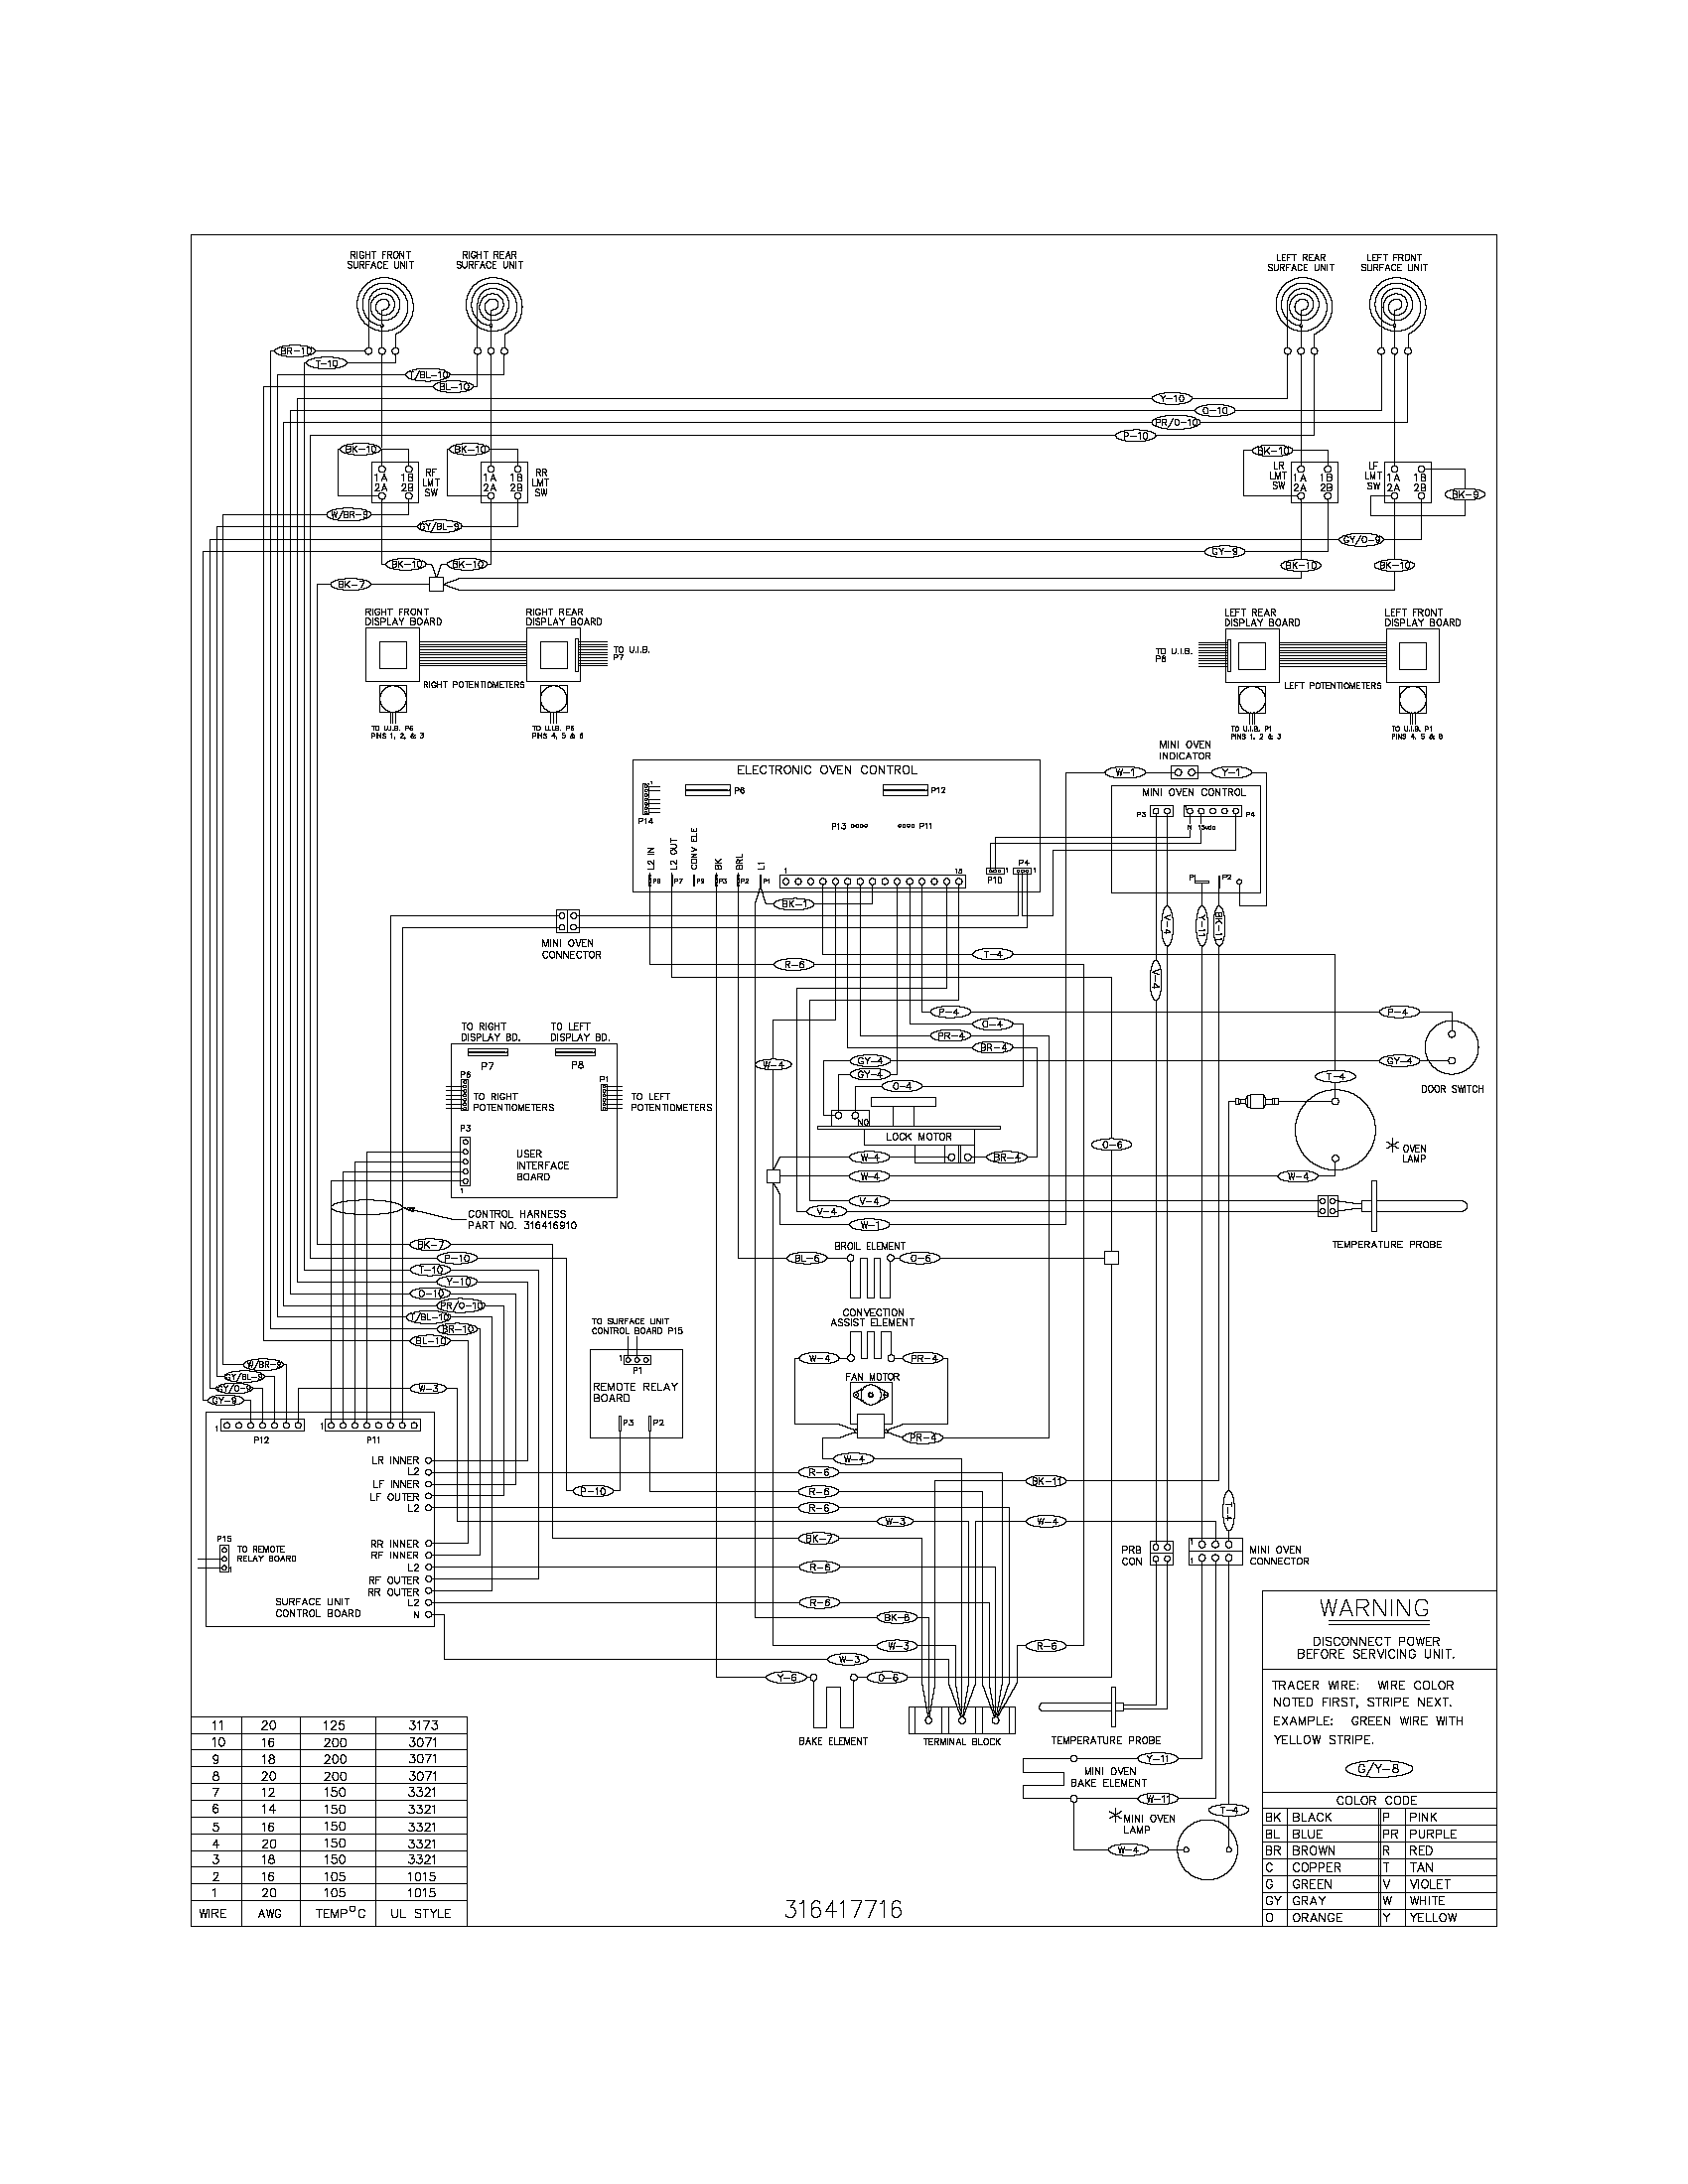 wiring diagram parts refrigerators parts frigidaire repair frigidaire refrigerator wiring schematic at gsmx.co